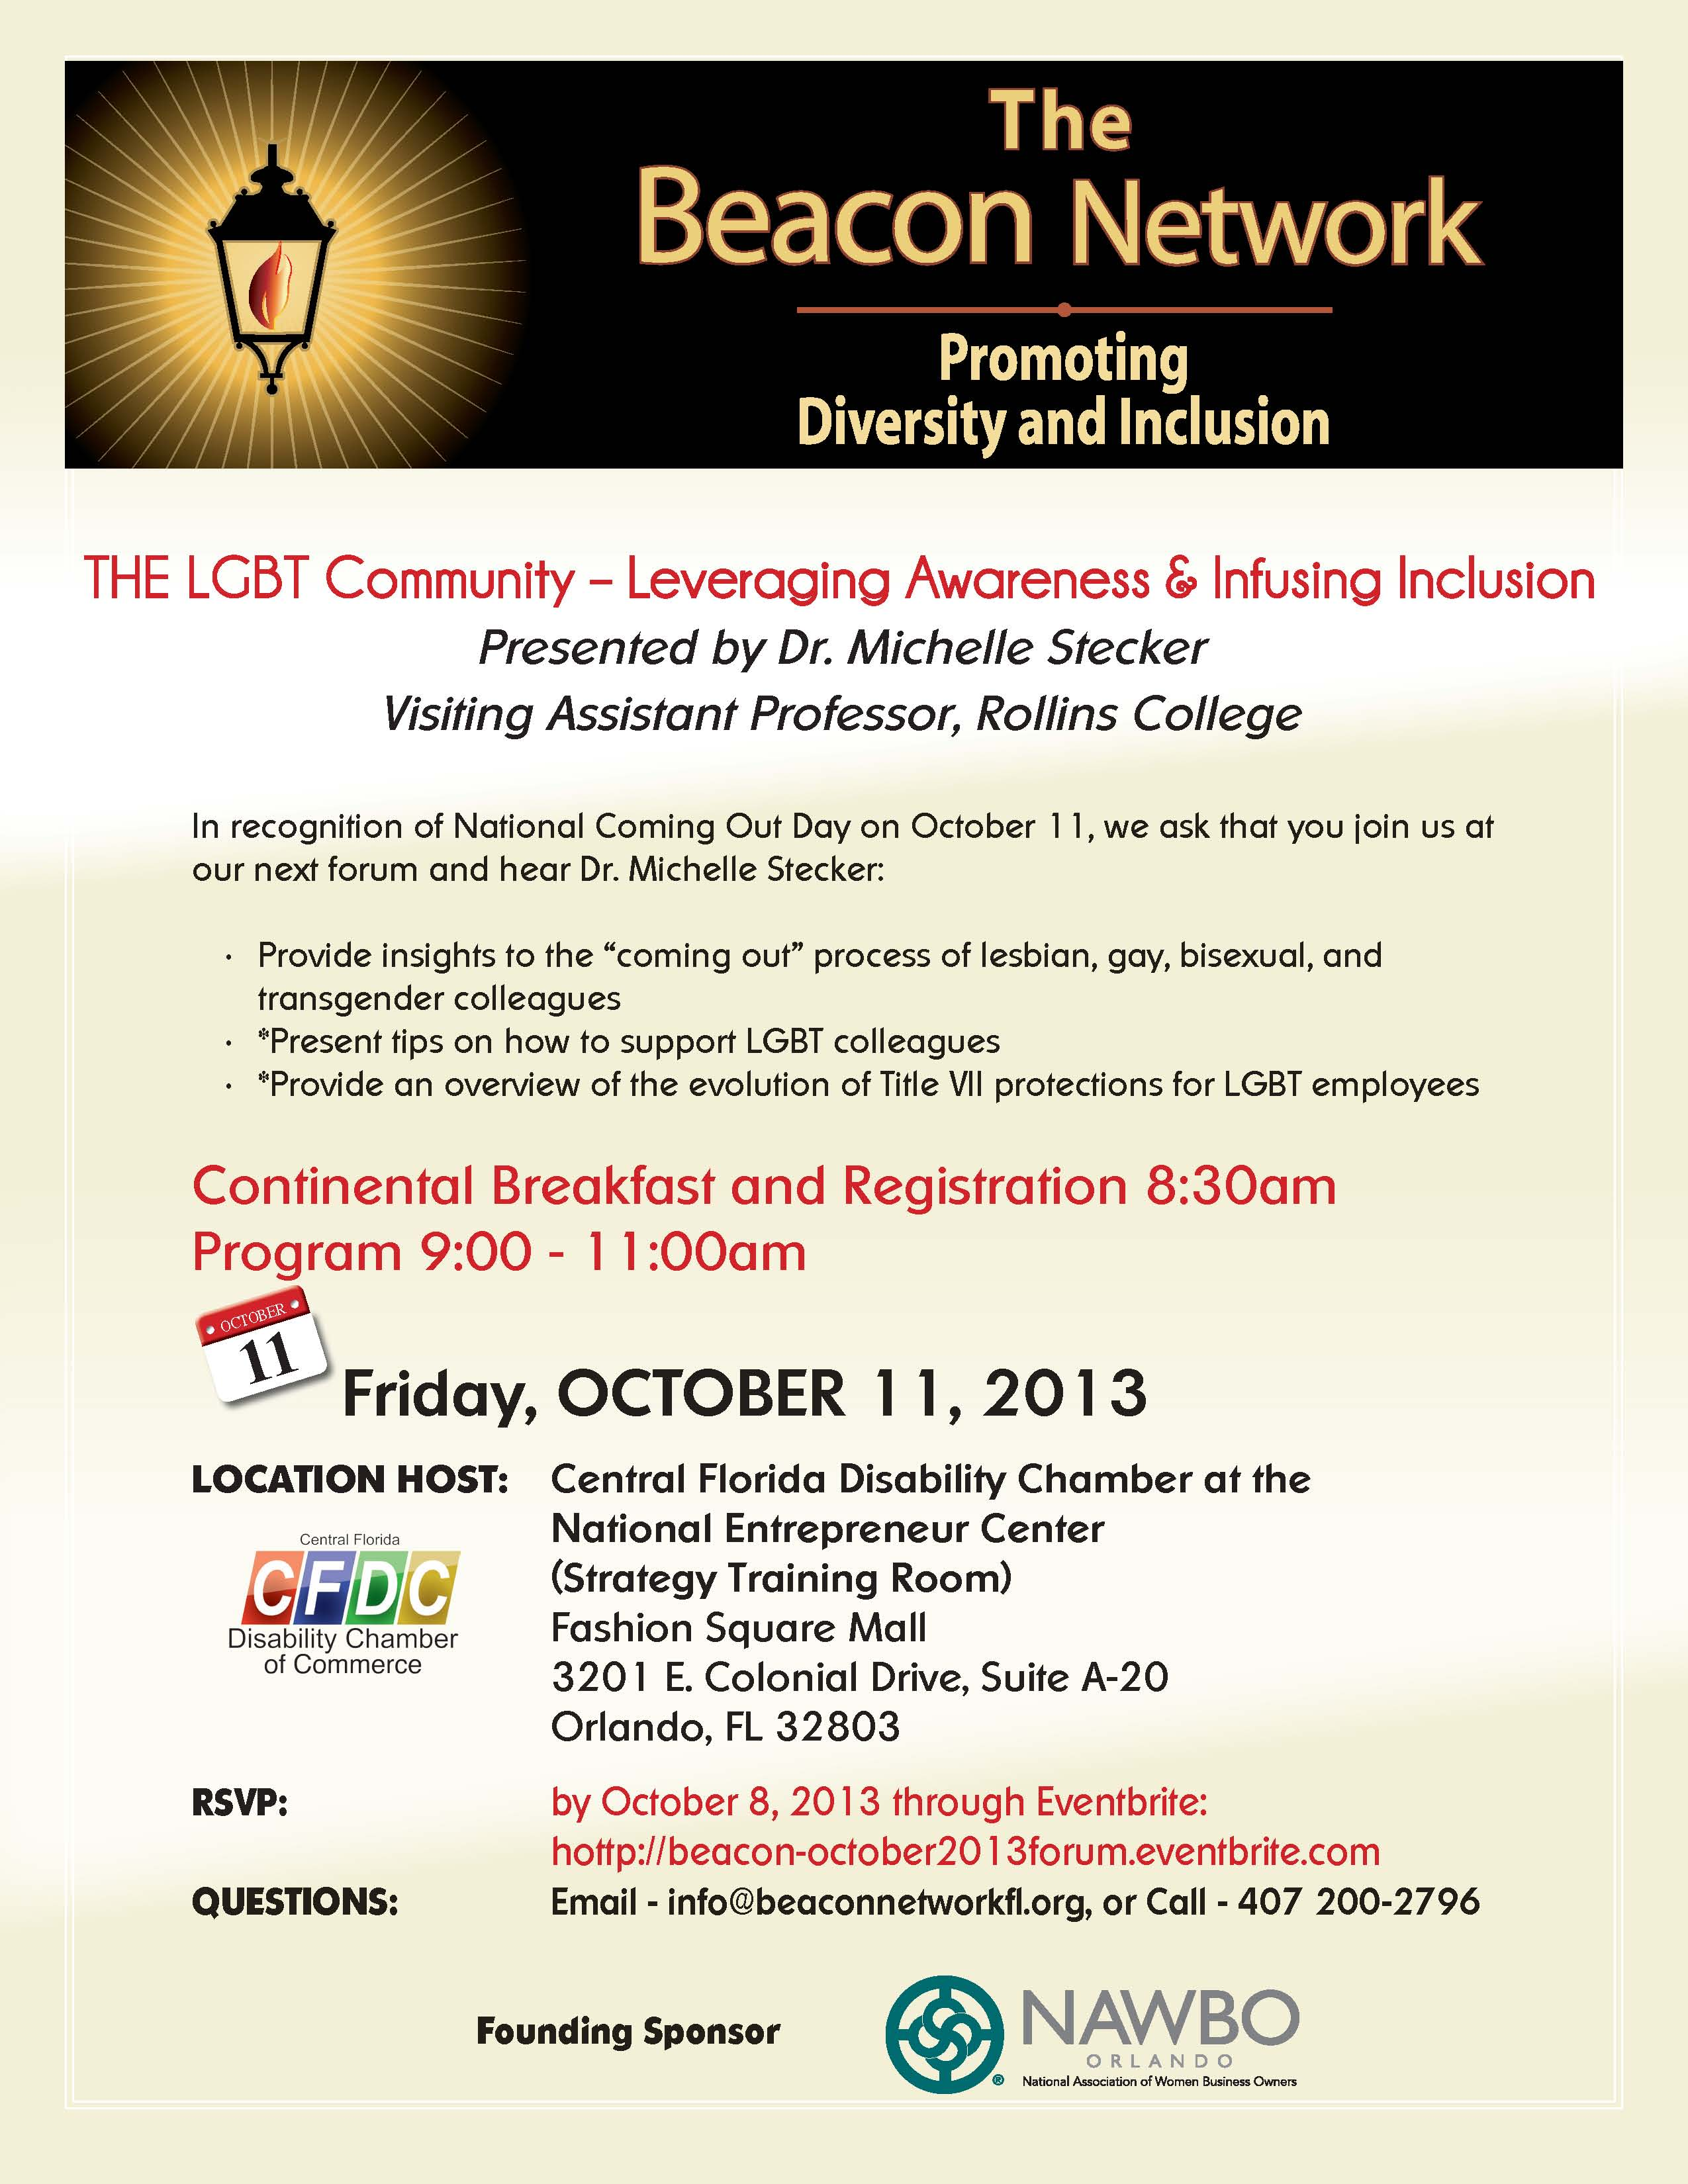 Save the date flyer image. Beacon Forum October 11, 2013.